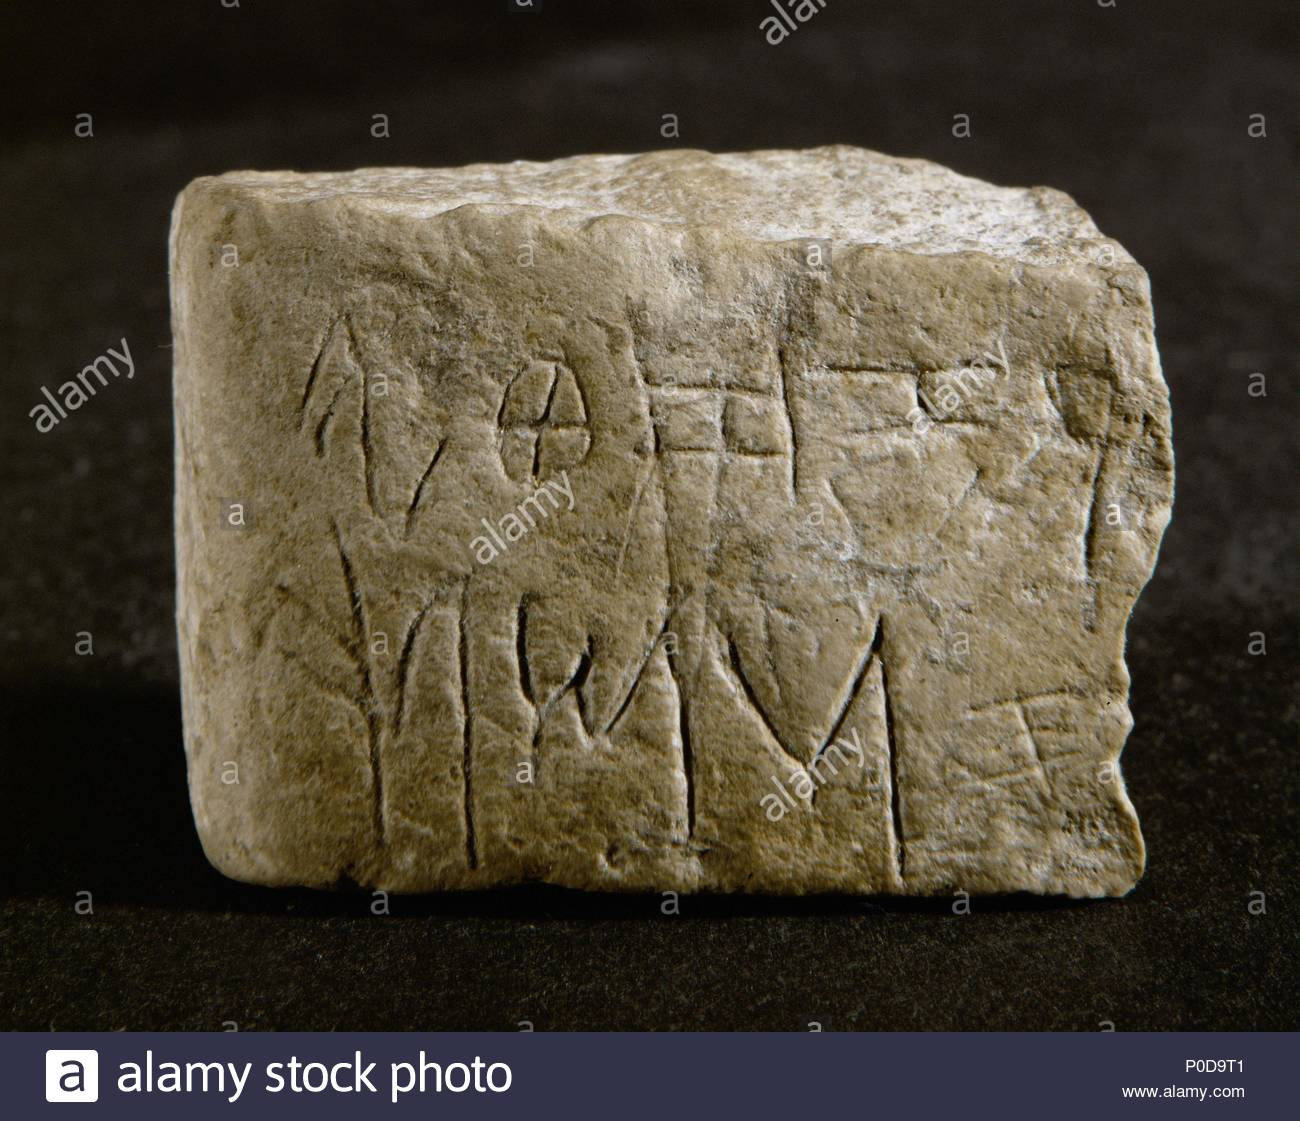 Part of a Hebrew alphabet tablet with ten letters, Shin to R, found near Hebron, Israel. Stone, Early Iron Age II 3 x 1.7 x 4.2 cm-Inv. H 815. Location: Reuben and Edith Hecht Collection-University, Haifa, Israel. - Stock Image